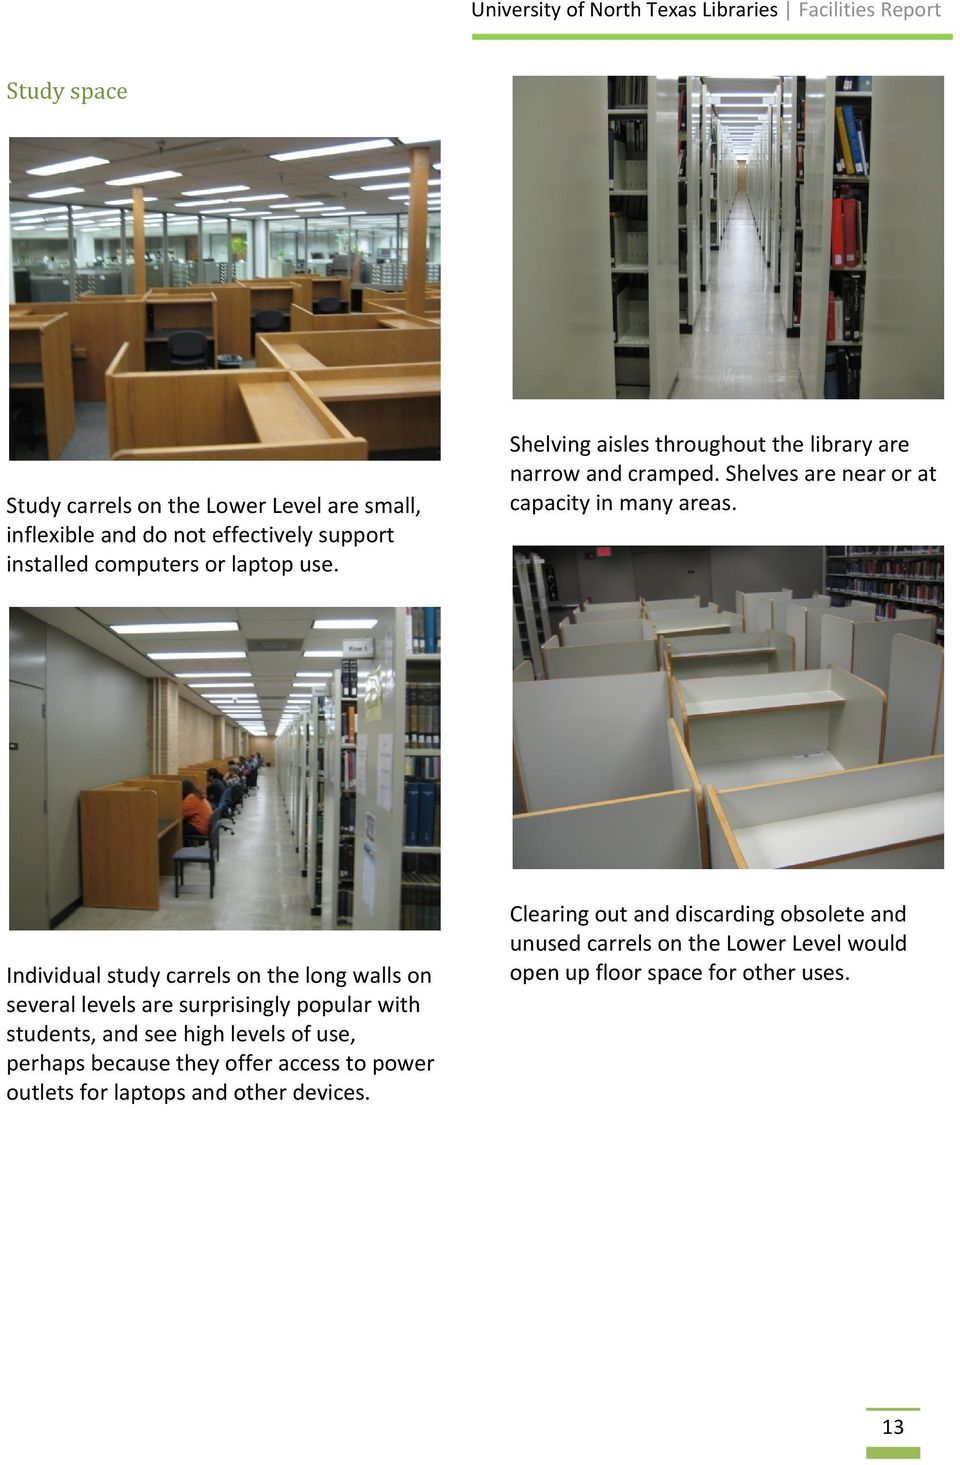 Individual study carrels on the long walls on several levels are surprisingly popular with students, and see high levels of use, perhaps